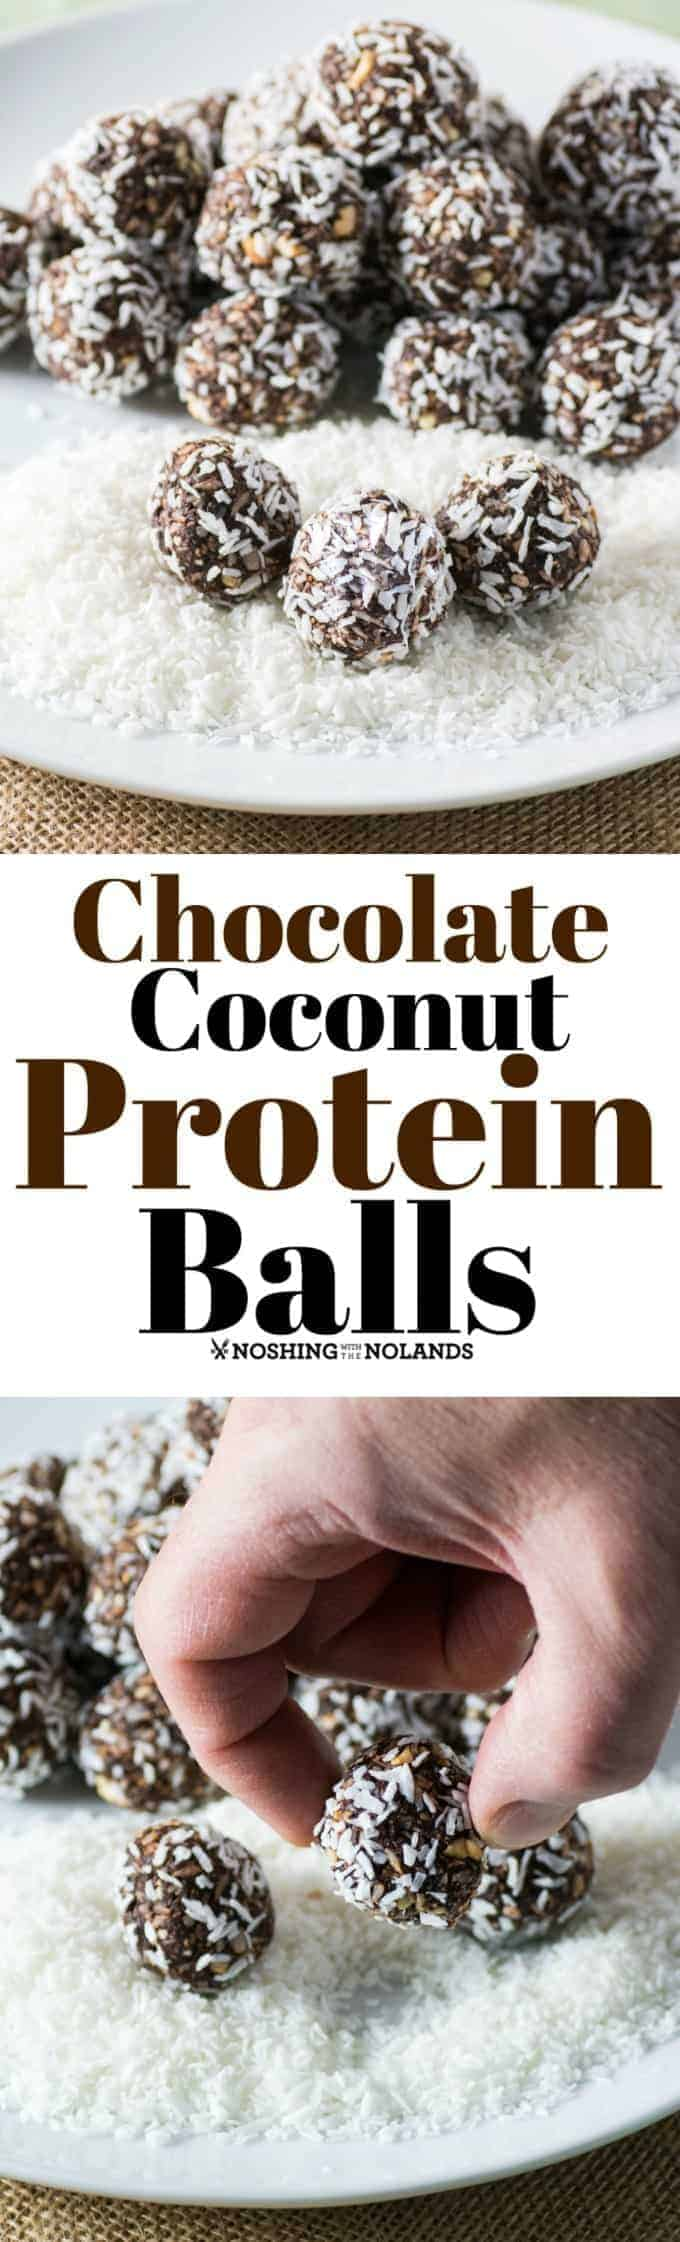 Chocolate Coconut Protein Balls by Noshing With The Nolands are a healthy and delicious snack for school or an afternoon pick me up!